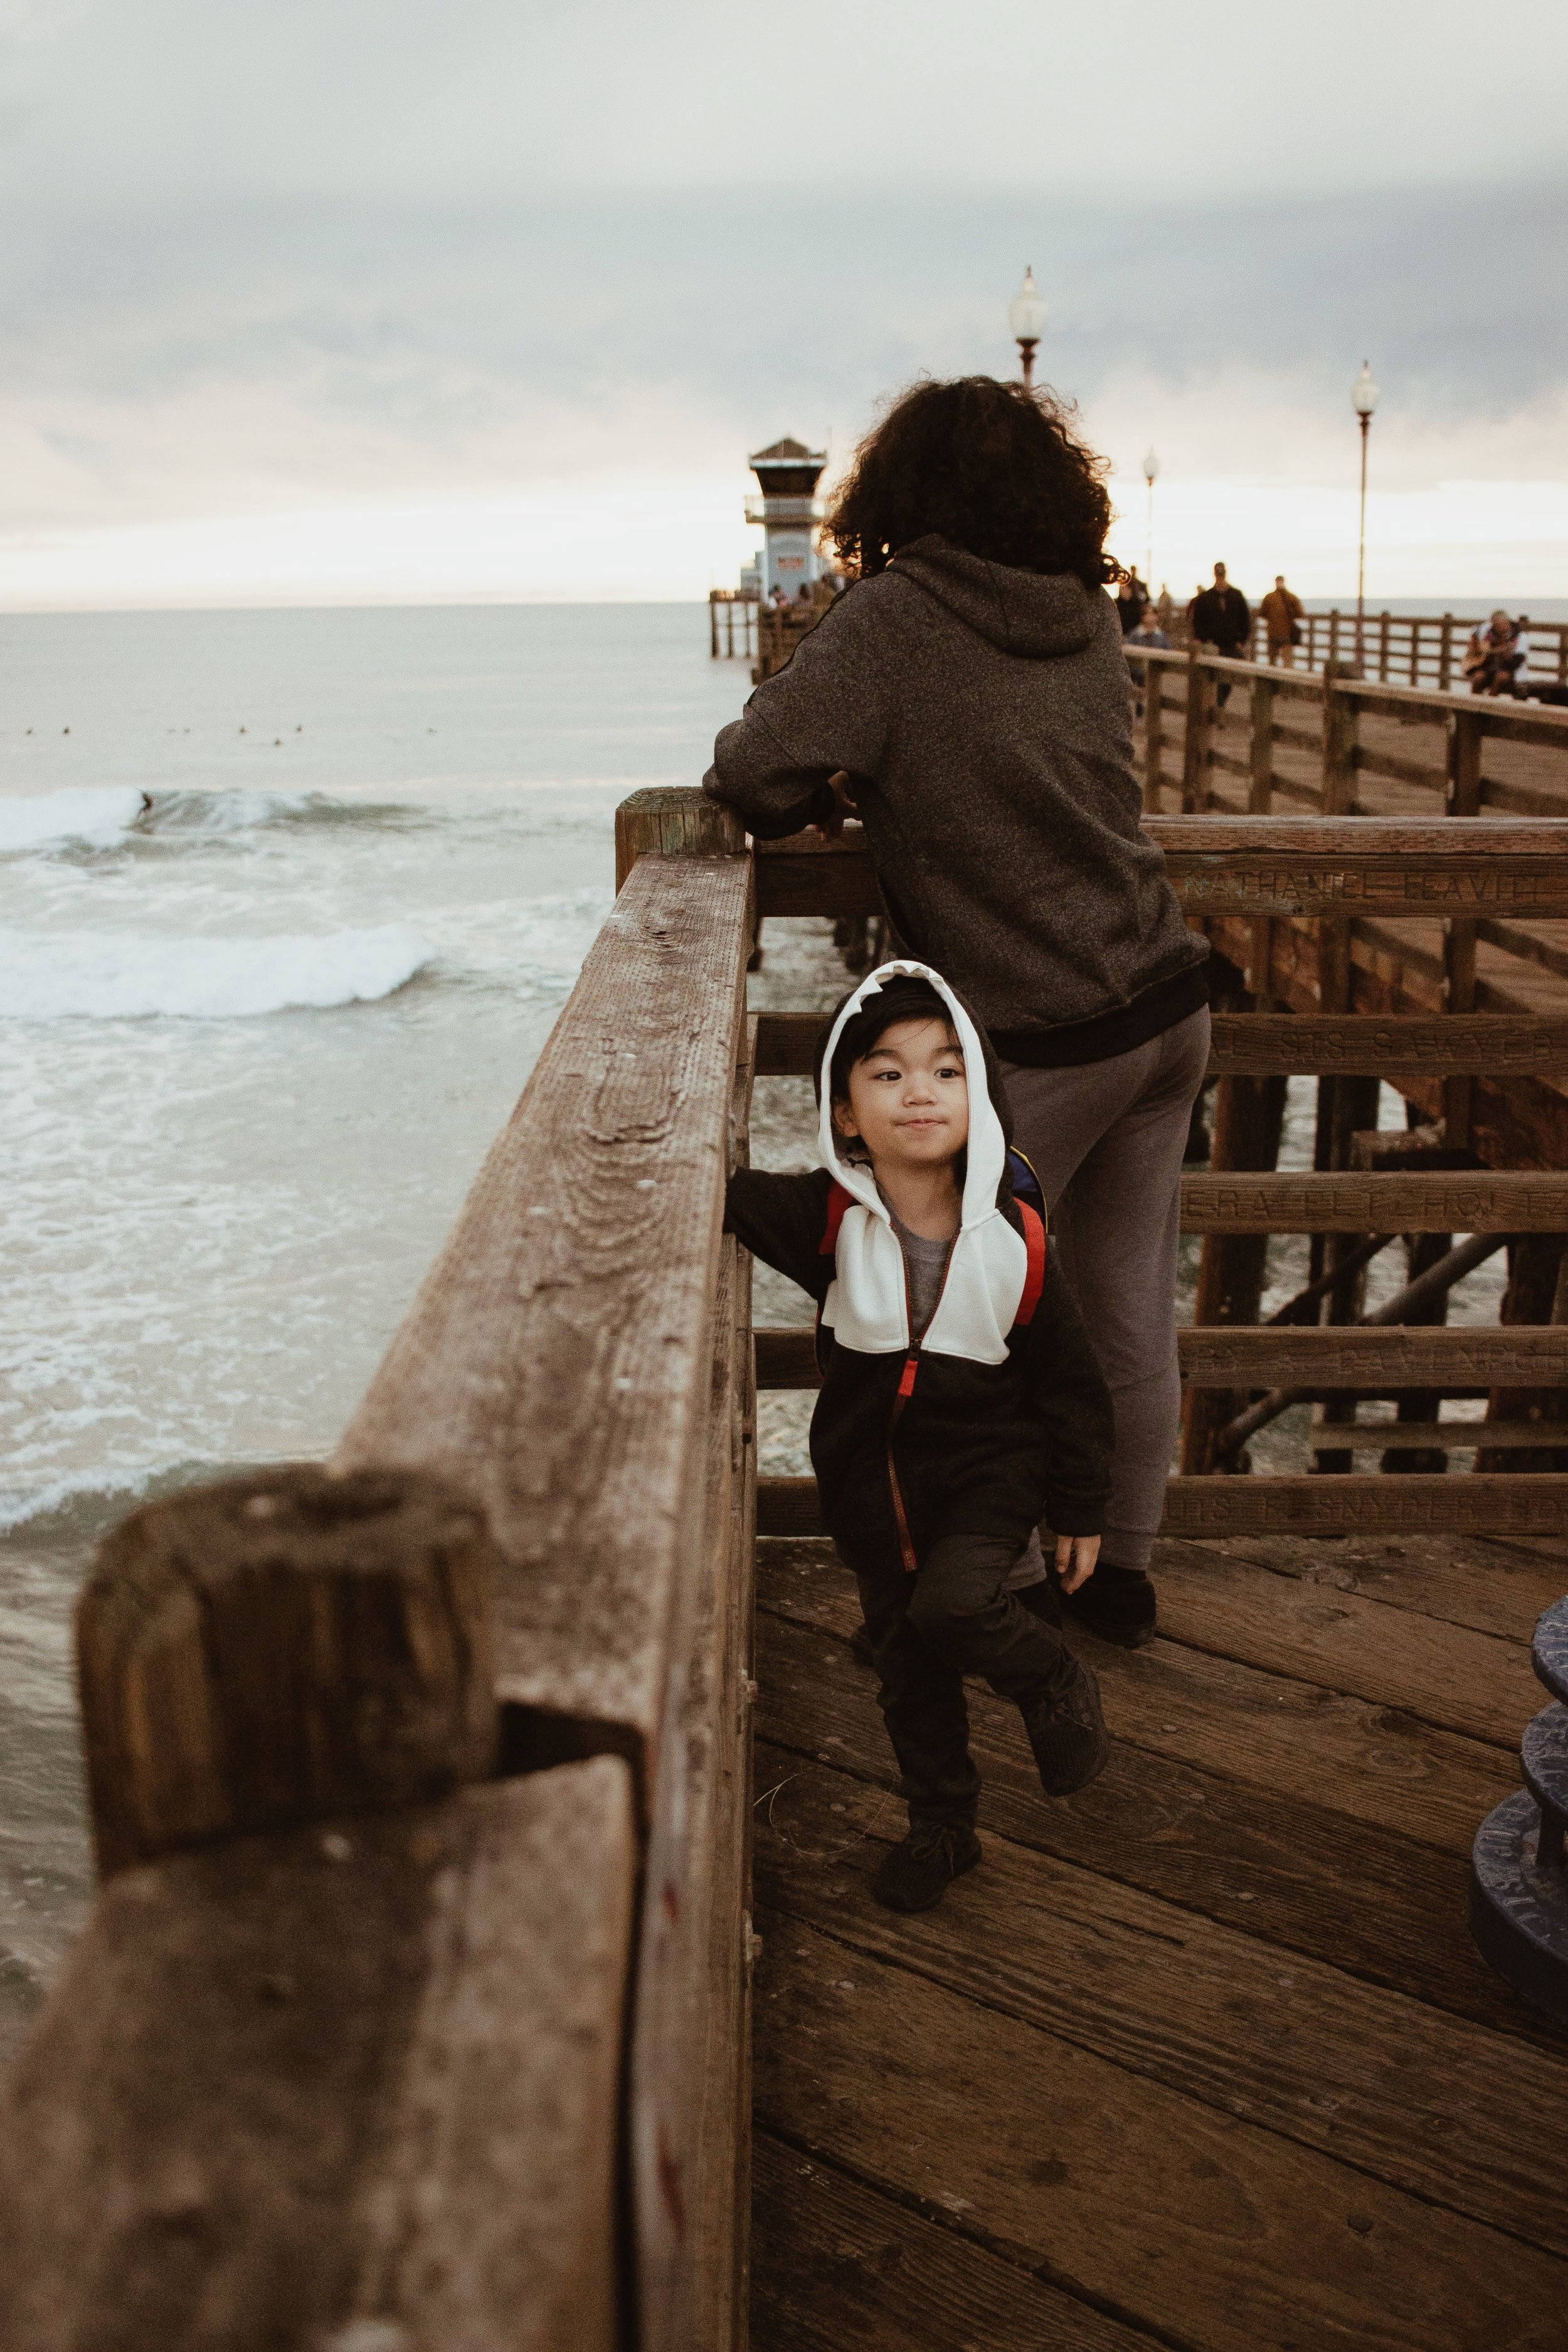 hellolovelyliving.com | Traveling Is Good For Mind, Body, And Soul | Oceanside Pier, California